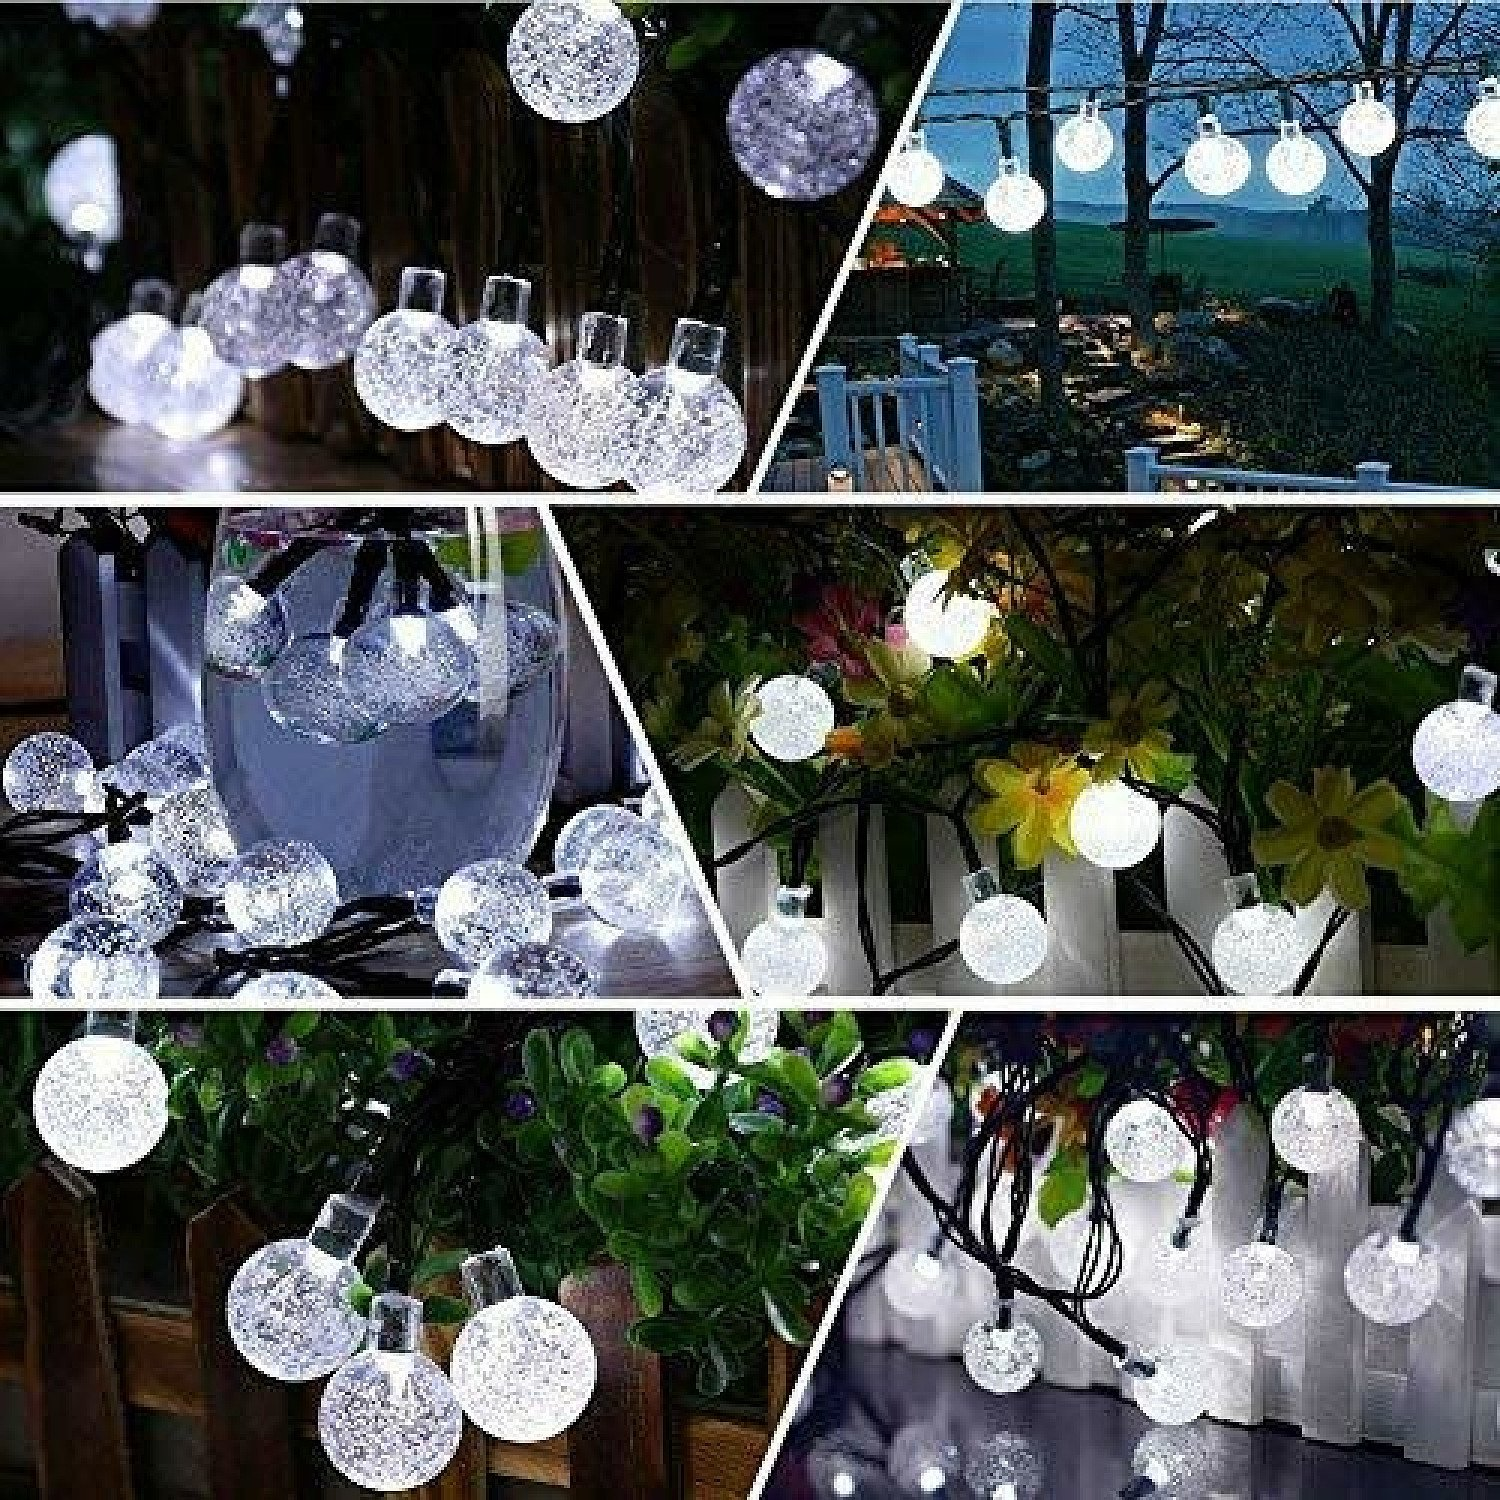 50 party LED lights only £9.90